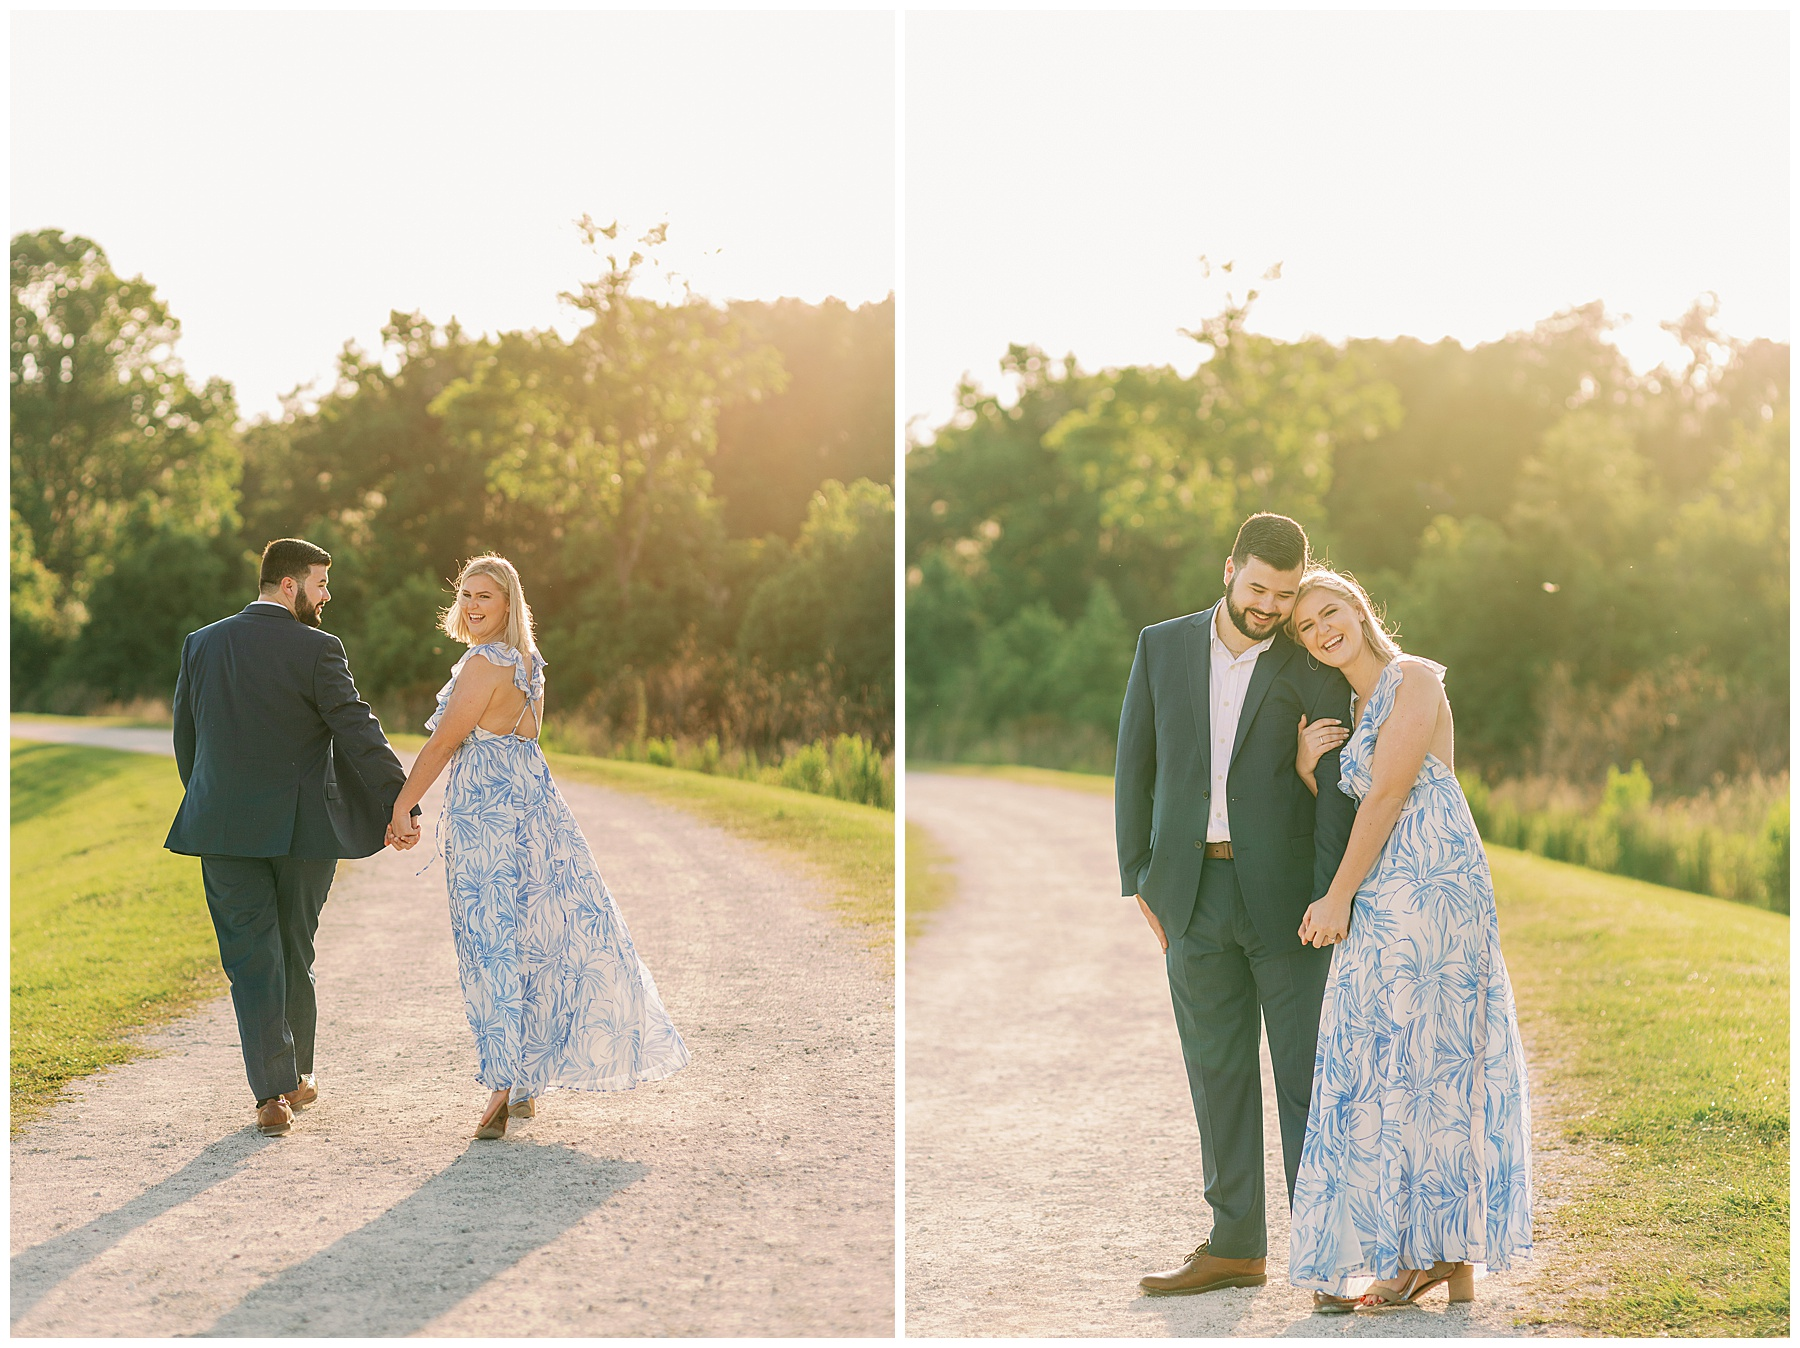 Girl in blue floral dress smiles while holding hands with her fiance in a suit